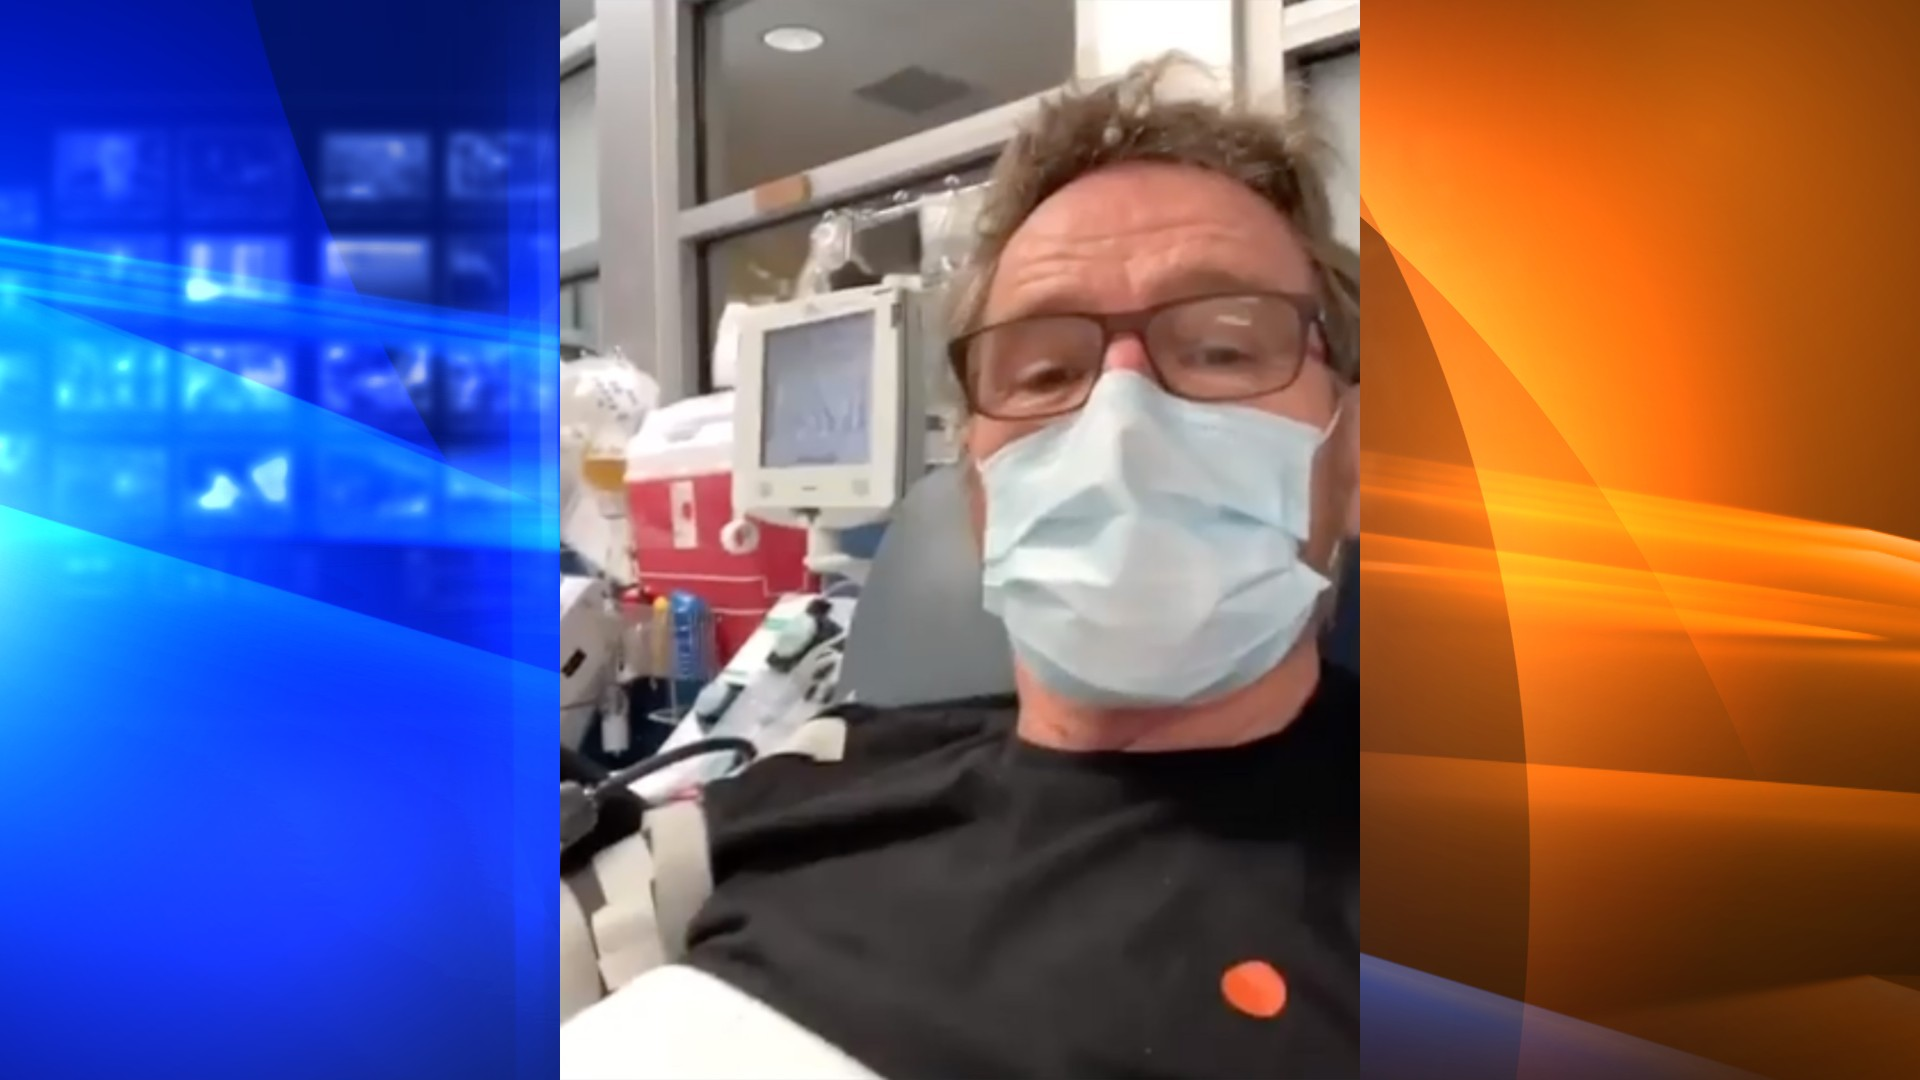 Actor Bryan Cranston revealed on Instagram that he was donating plasma after testing positive for COVID-19. (Bryan Cranston/Instagram)